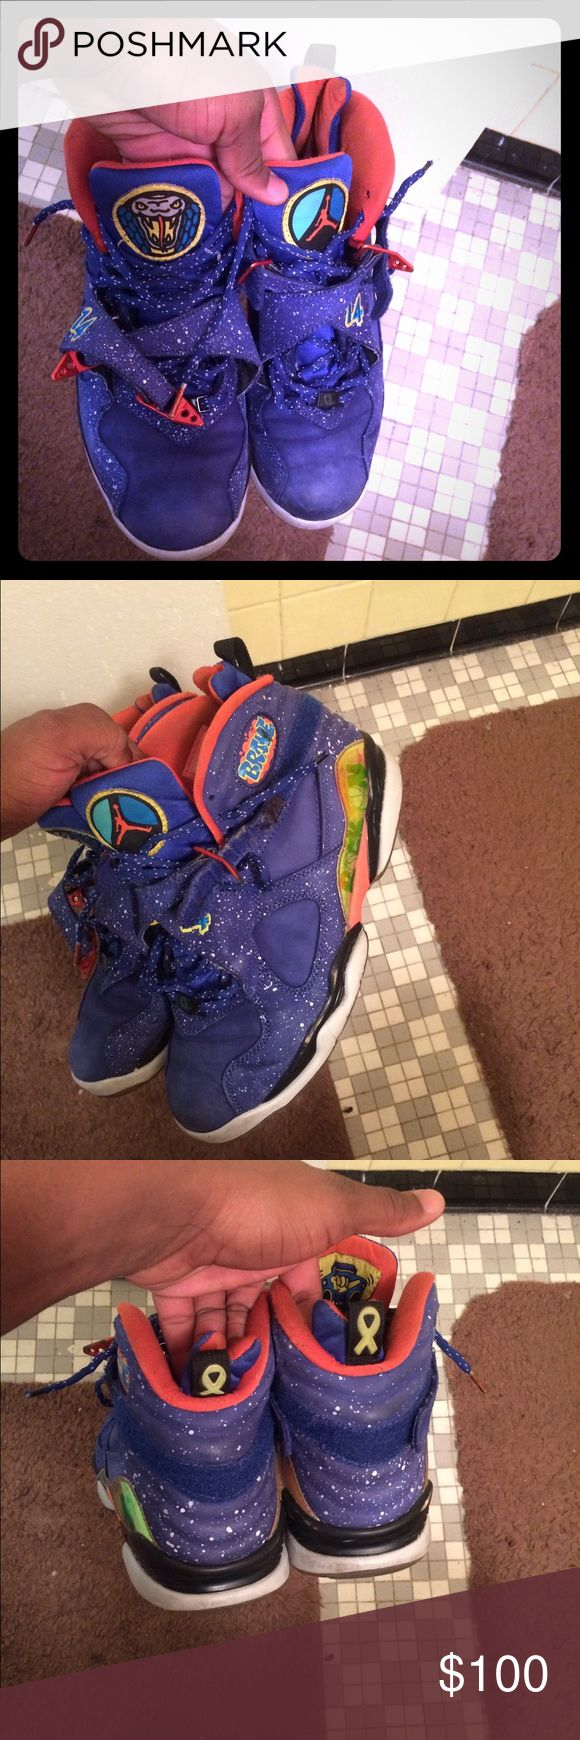 doernbecher 8s Very rare Jordan 8s SZ 10.5 collectors editon still wearable or for re customization can fit a SZ 11 or 10 8s cut original box is included Jordan Shoes Sneakers